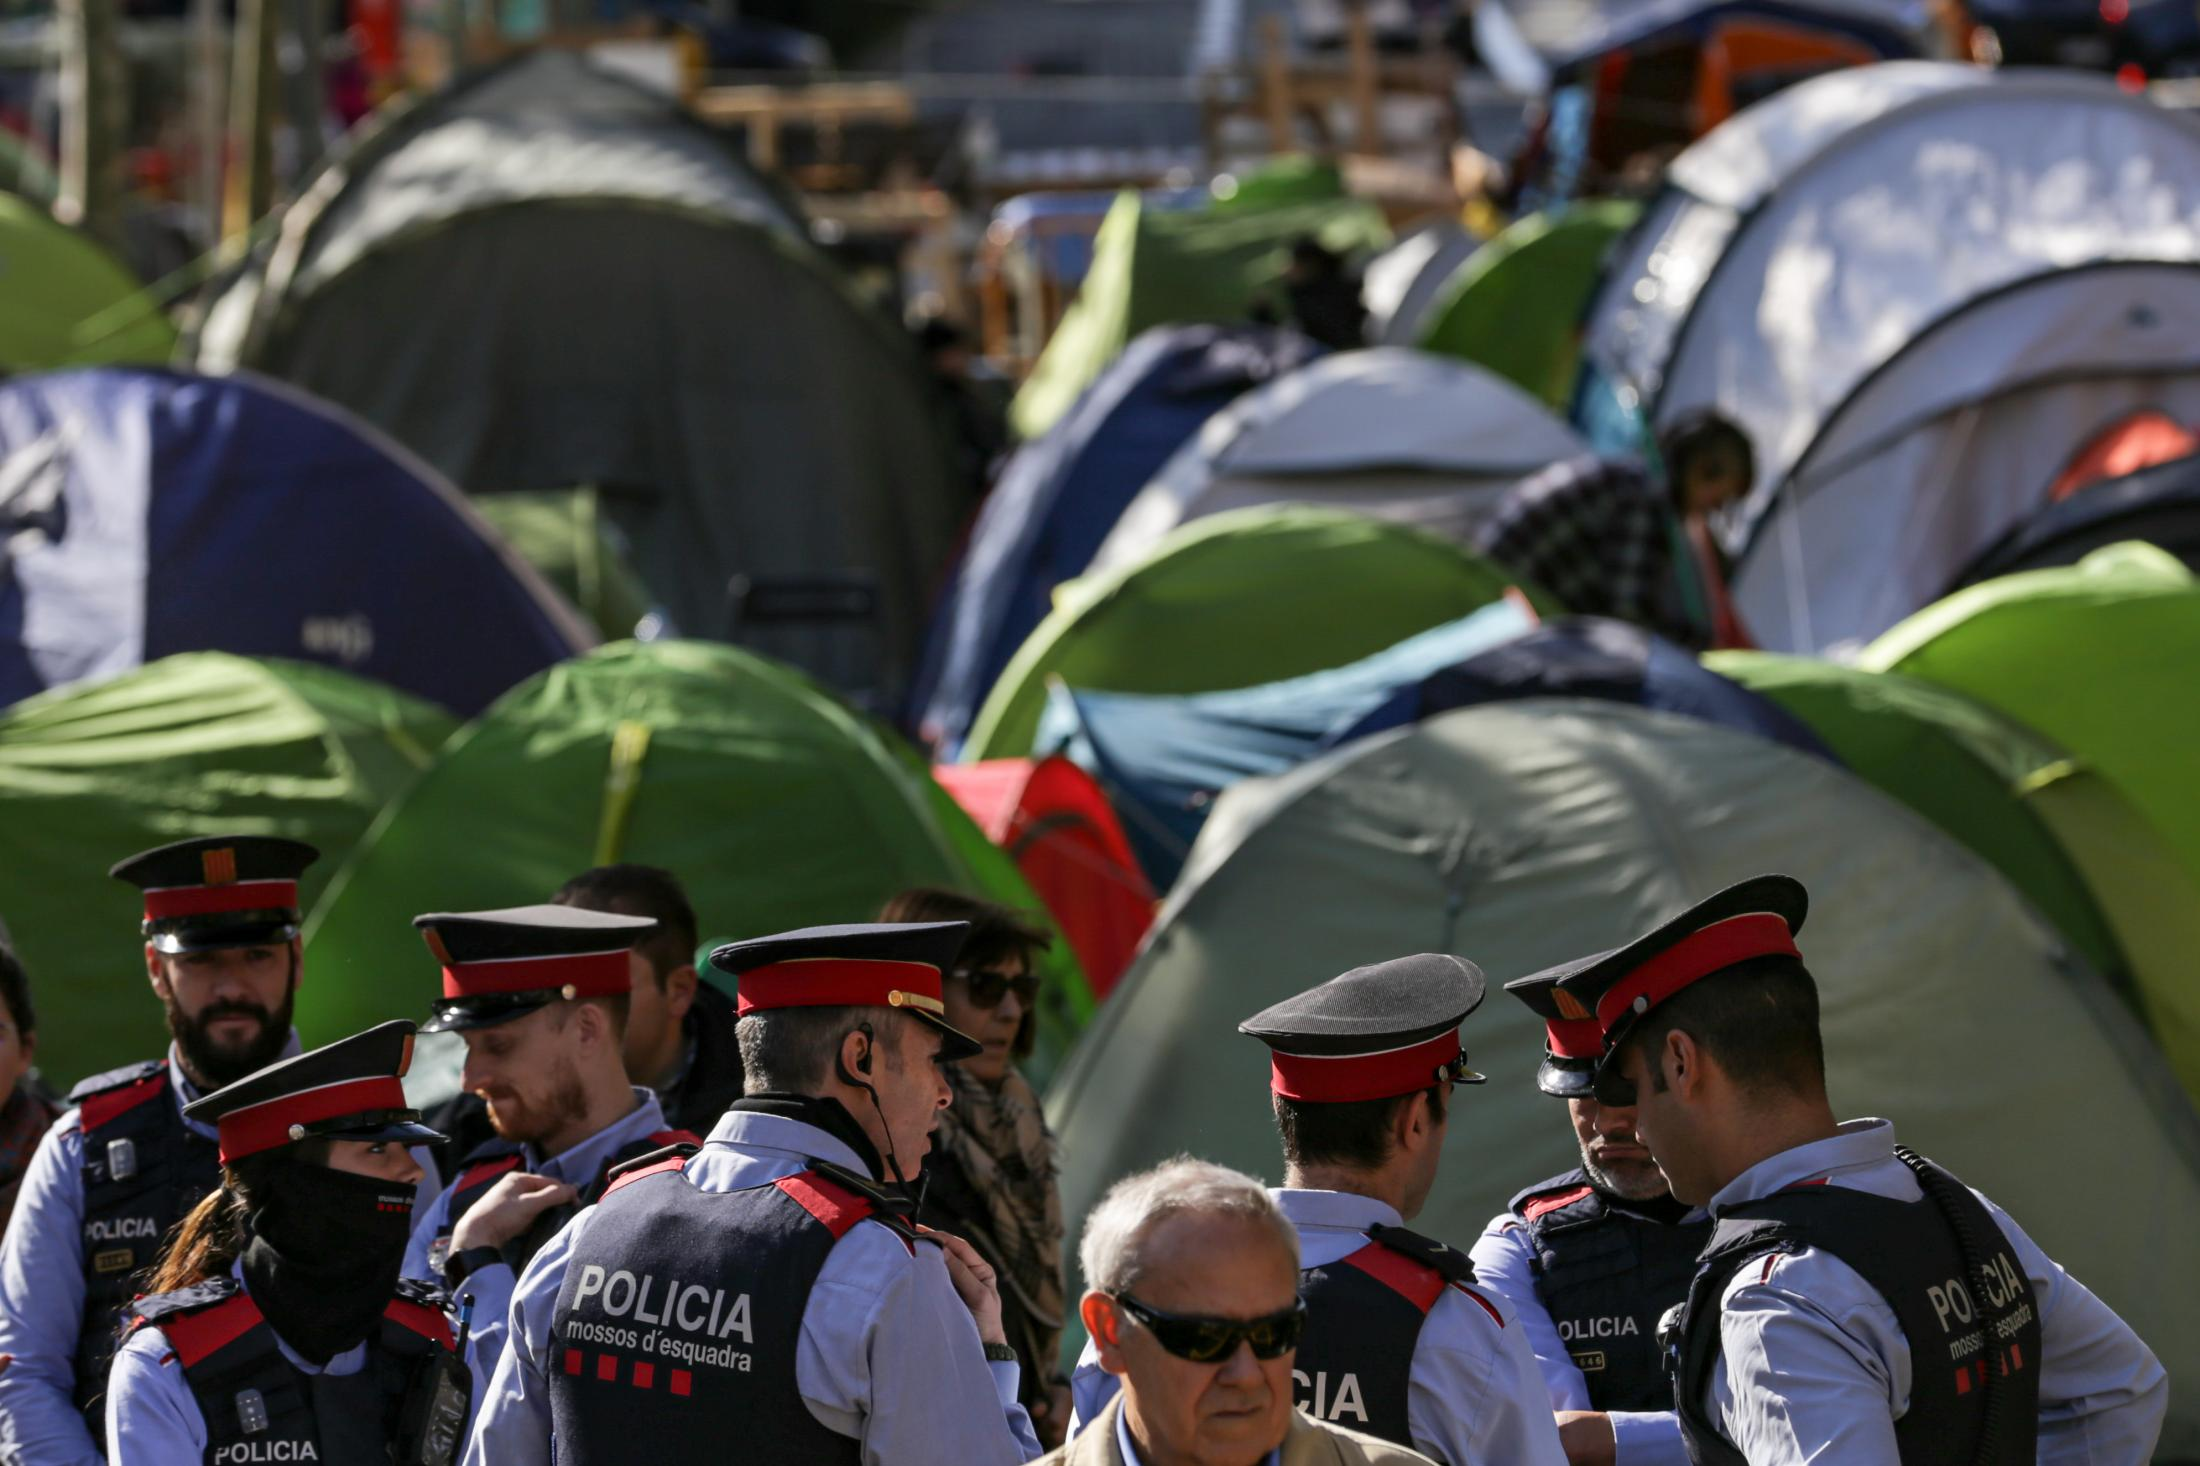 The police carry out identifications, the rain and the cold are advancing and some arrests made difficult to stay in the camp of Piazza Universidad which will be evicted by the Urban Guard in riot gear at 1.00 am. November 2019, Barcelona, Spain